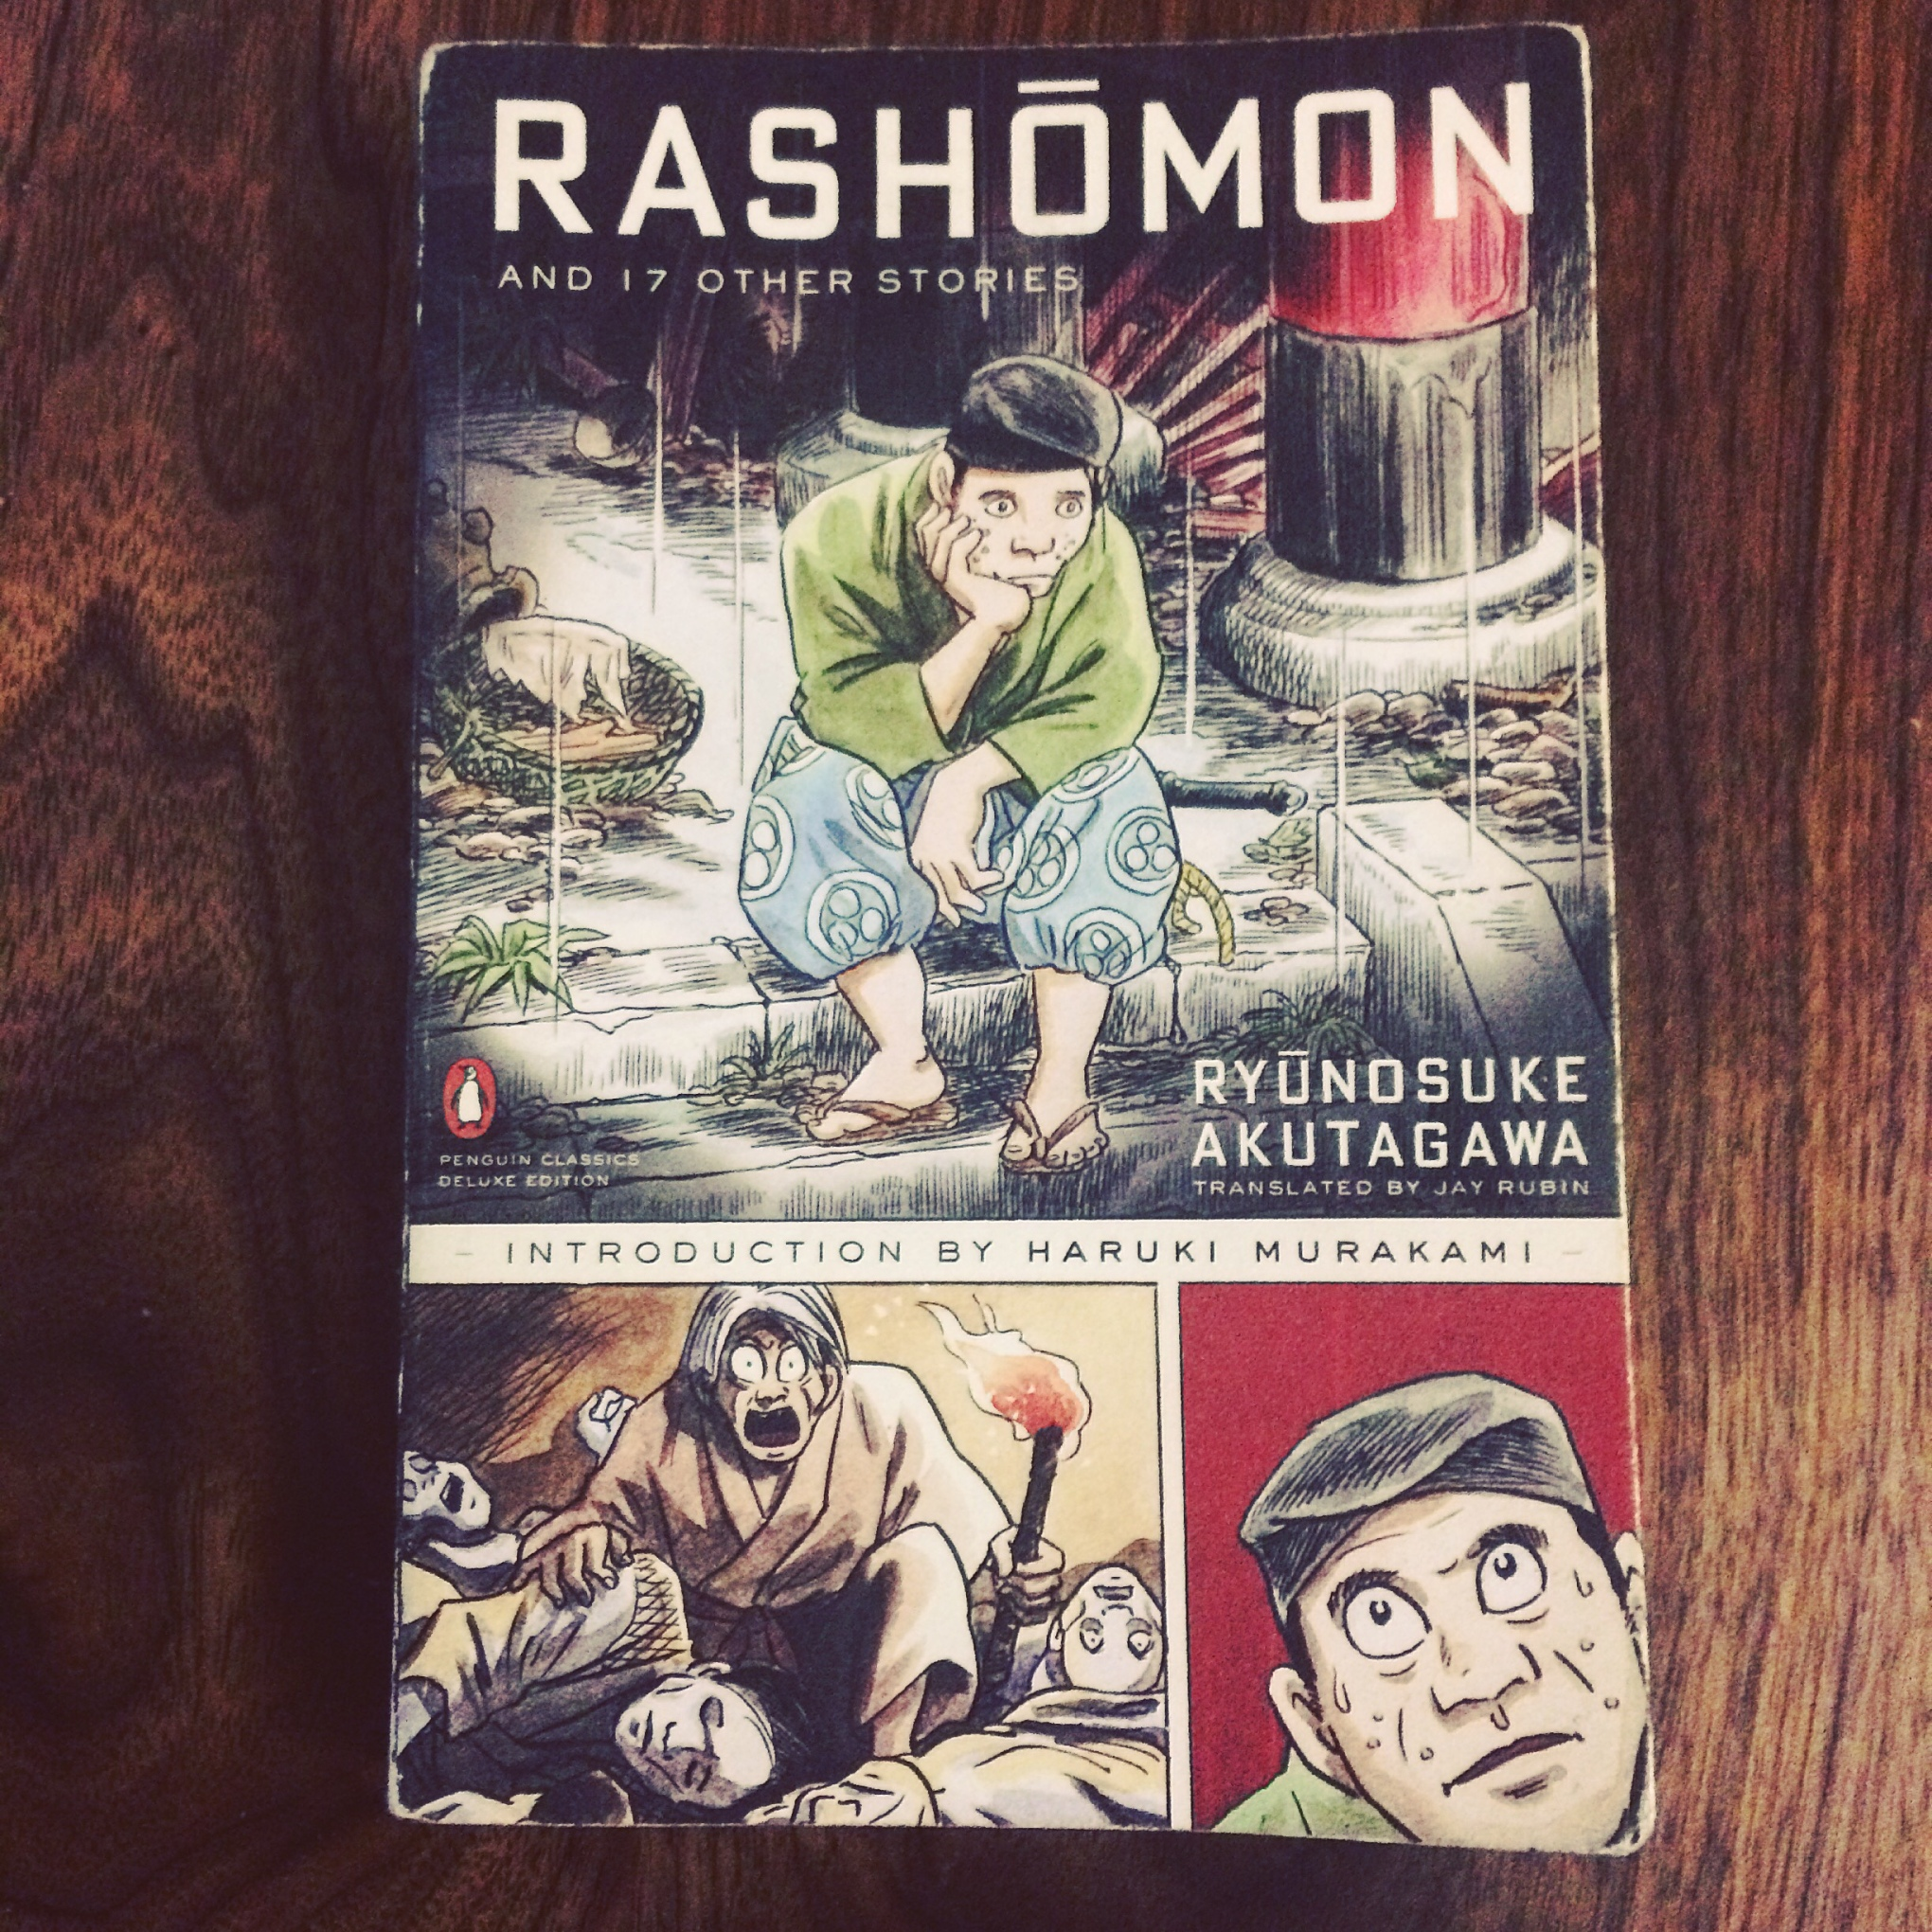 Rashōmon and 17 Other Stories by Ryūnosuke Akutagawa